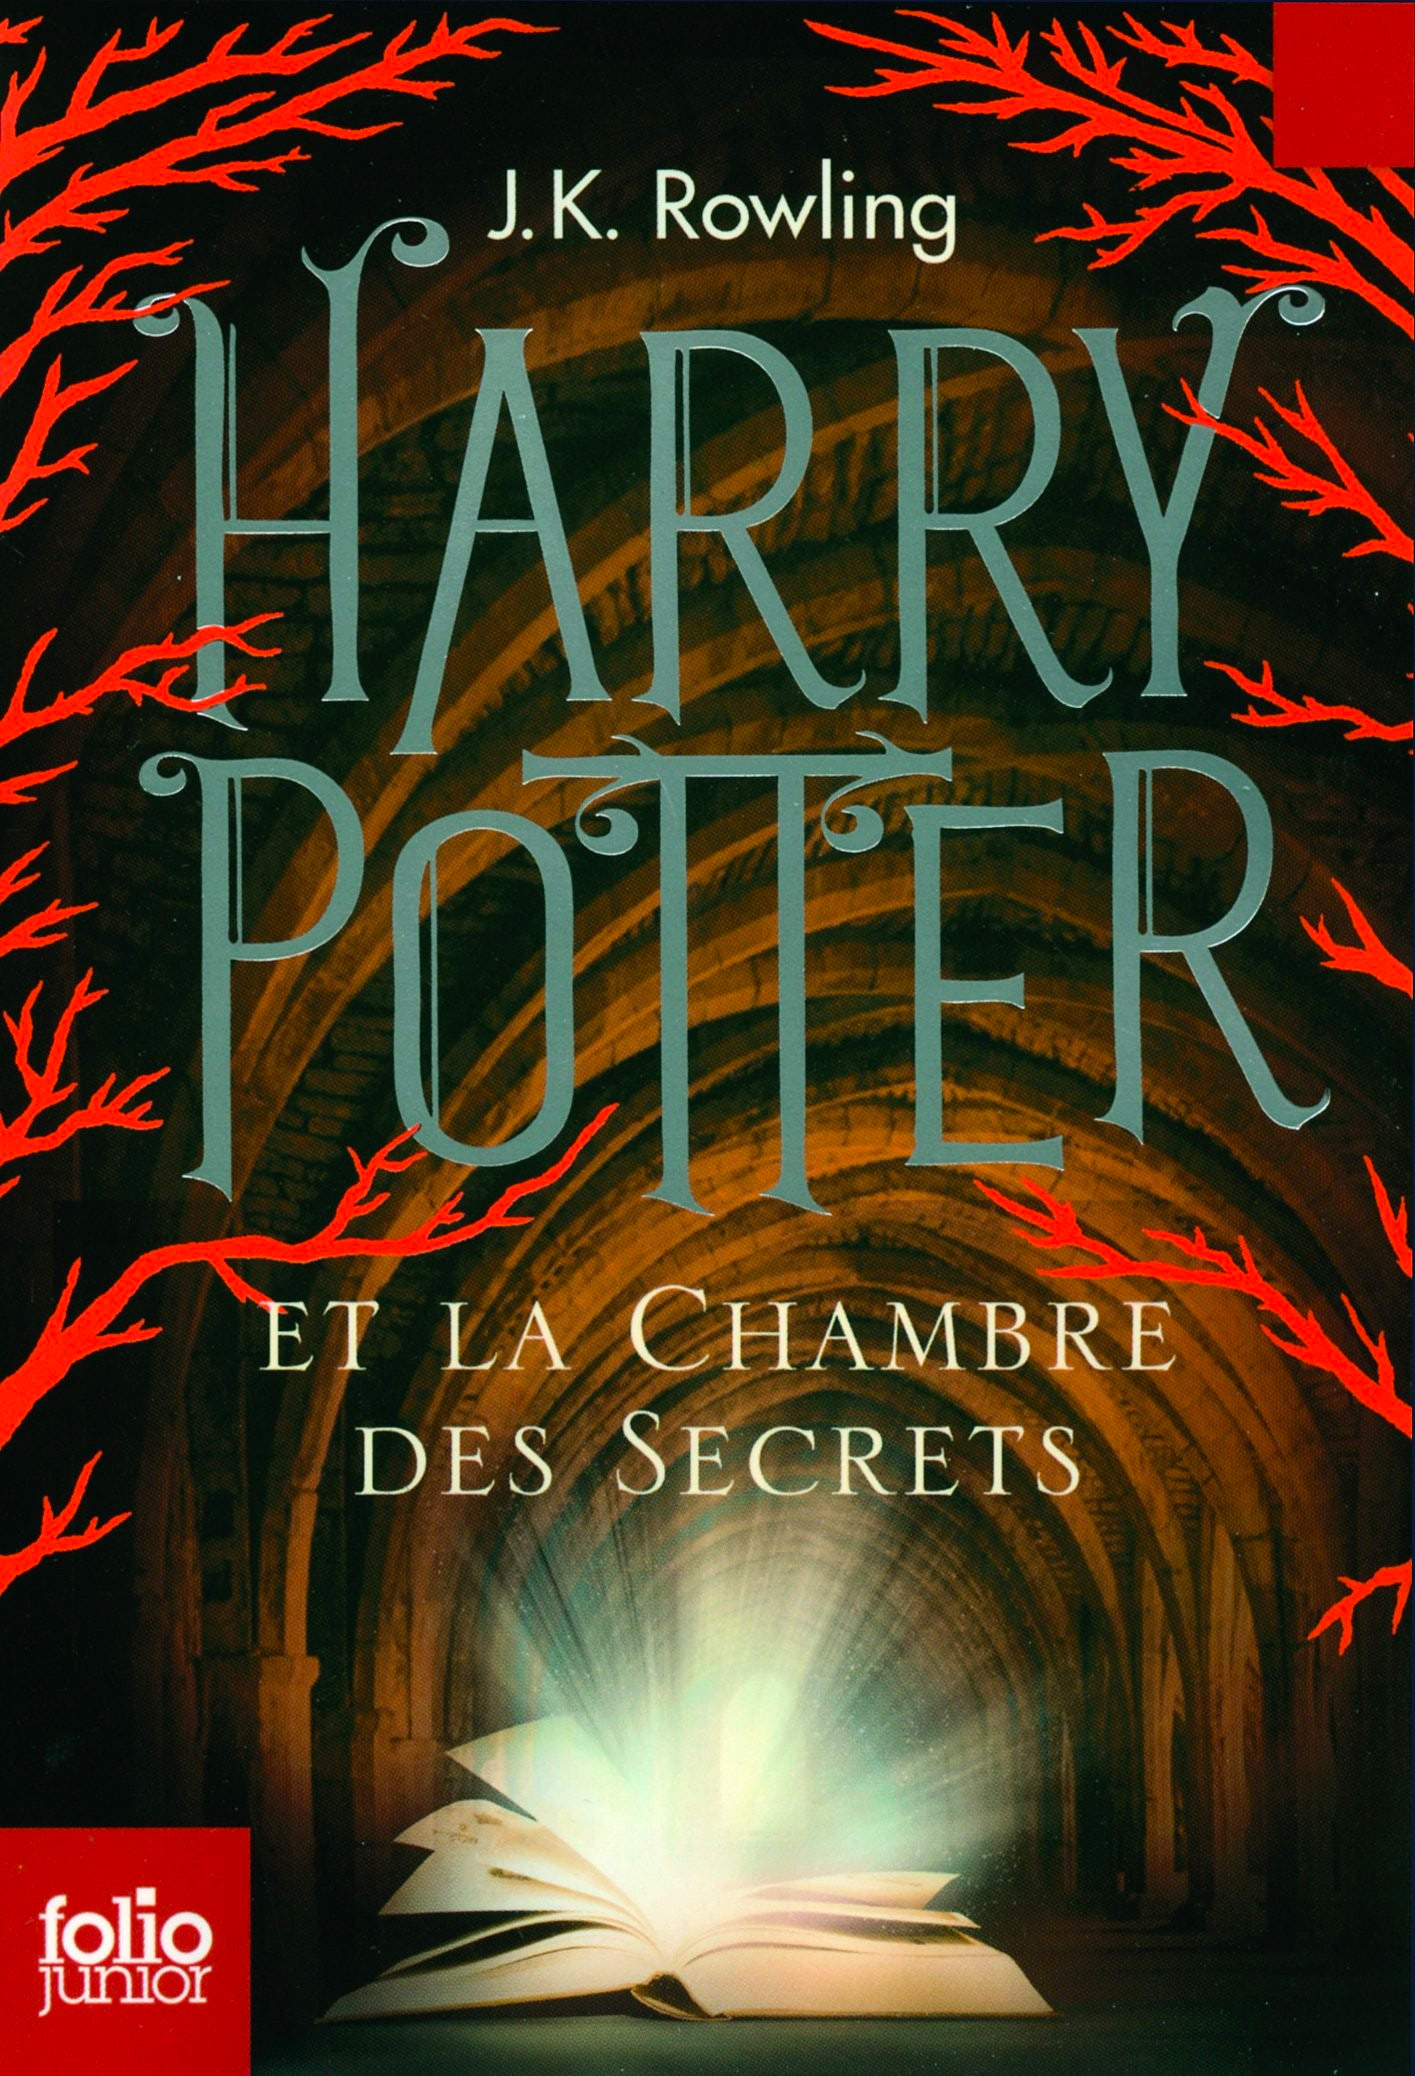 'Chamber of Secrets' French adult edition